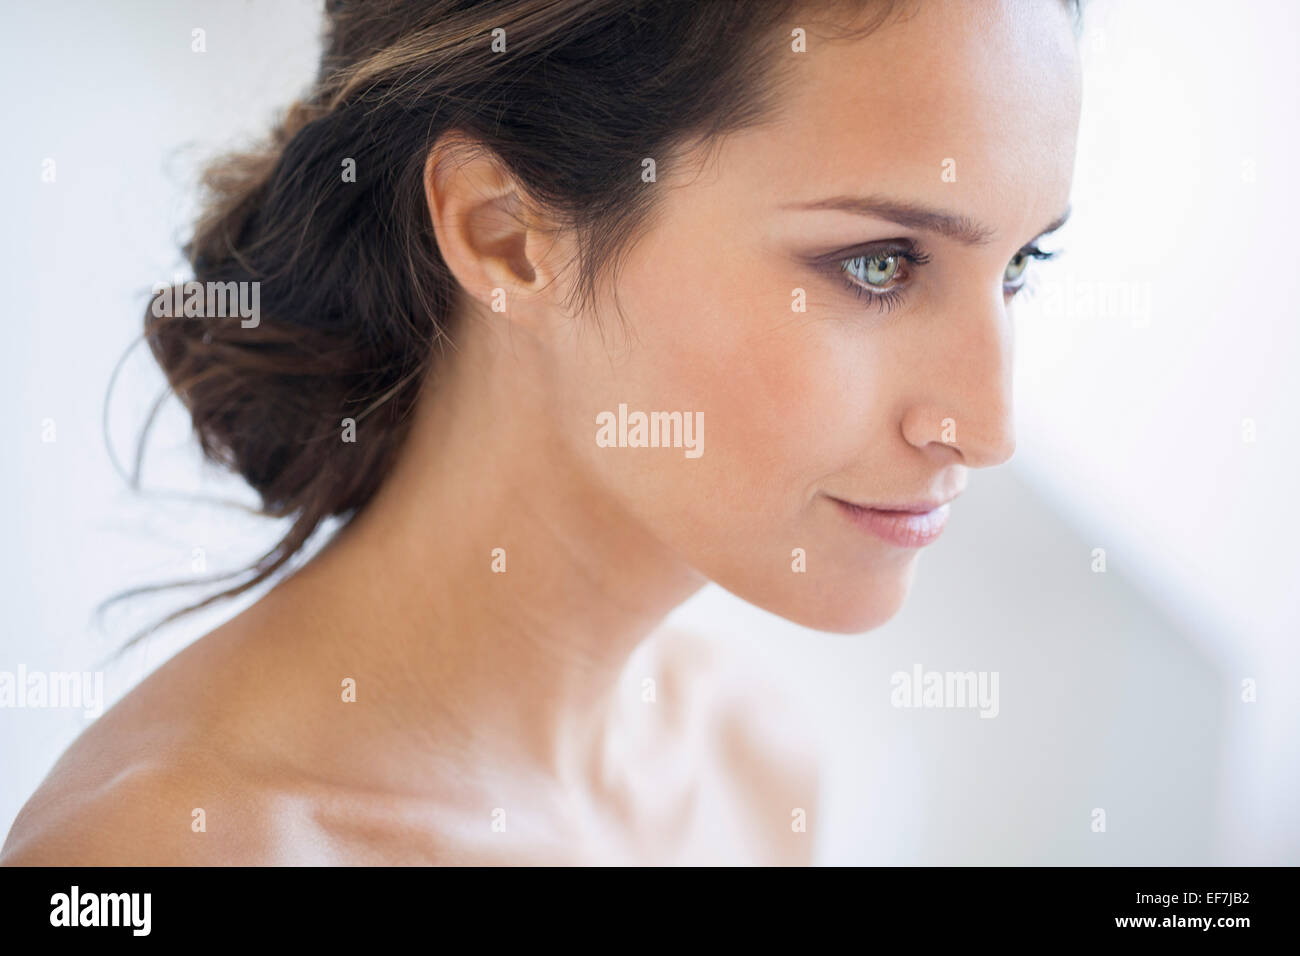 Portrait of a Beautiful woman smiling Photo Stock